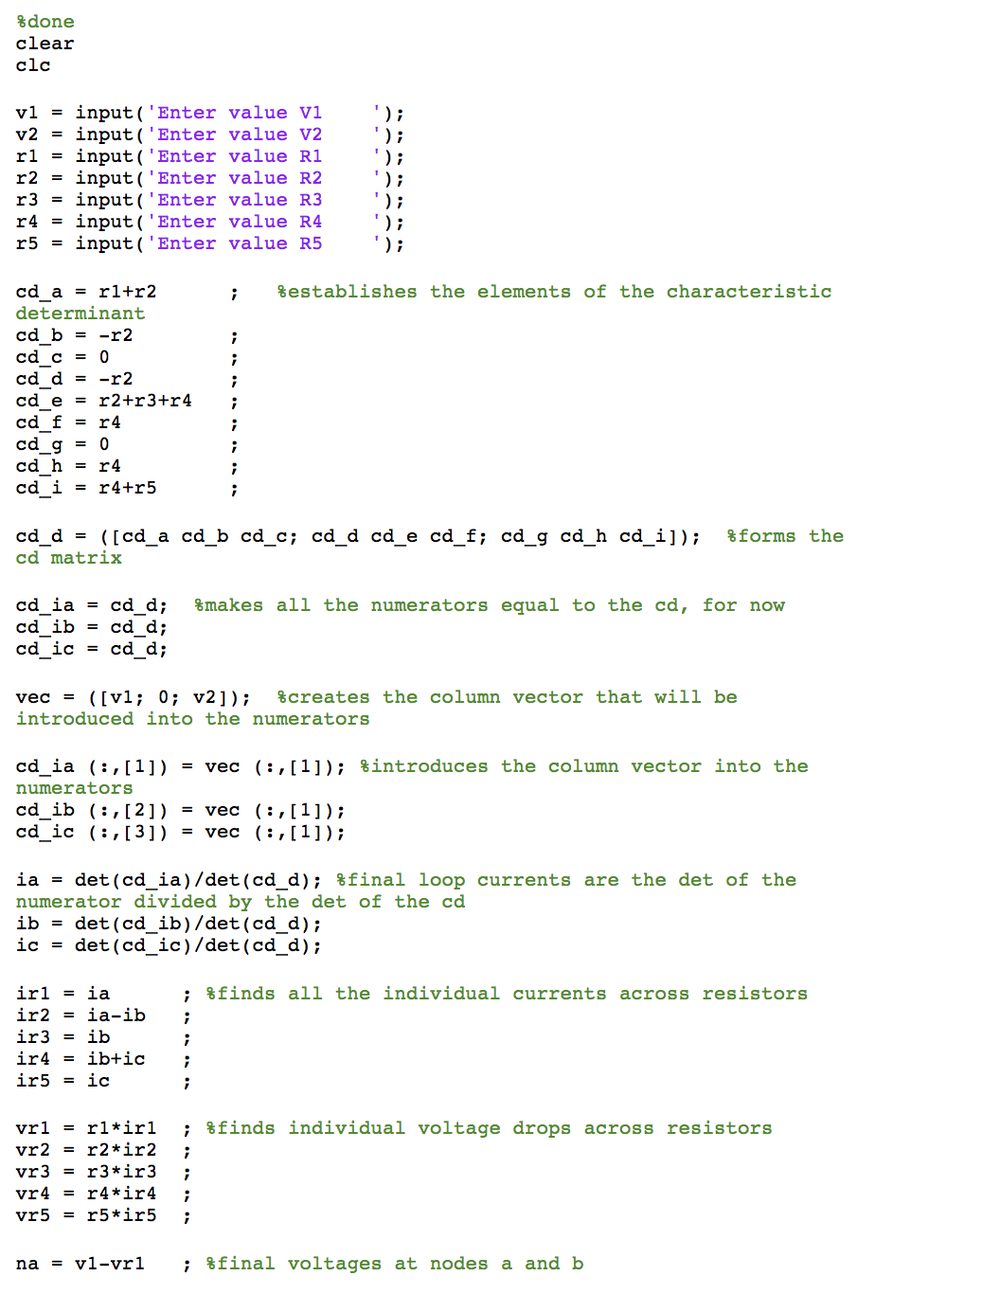 This just a sample of Matlab code. I take pride in my code writing, and make an effort to keep is sensible and tidy.